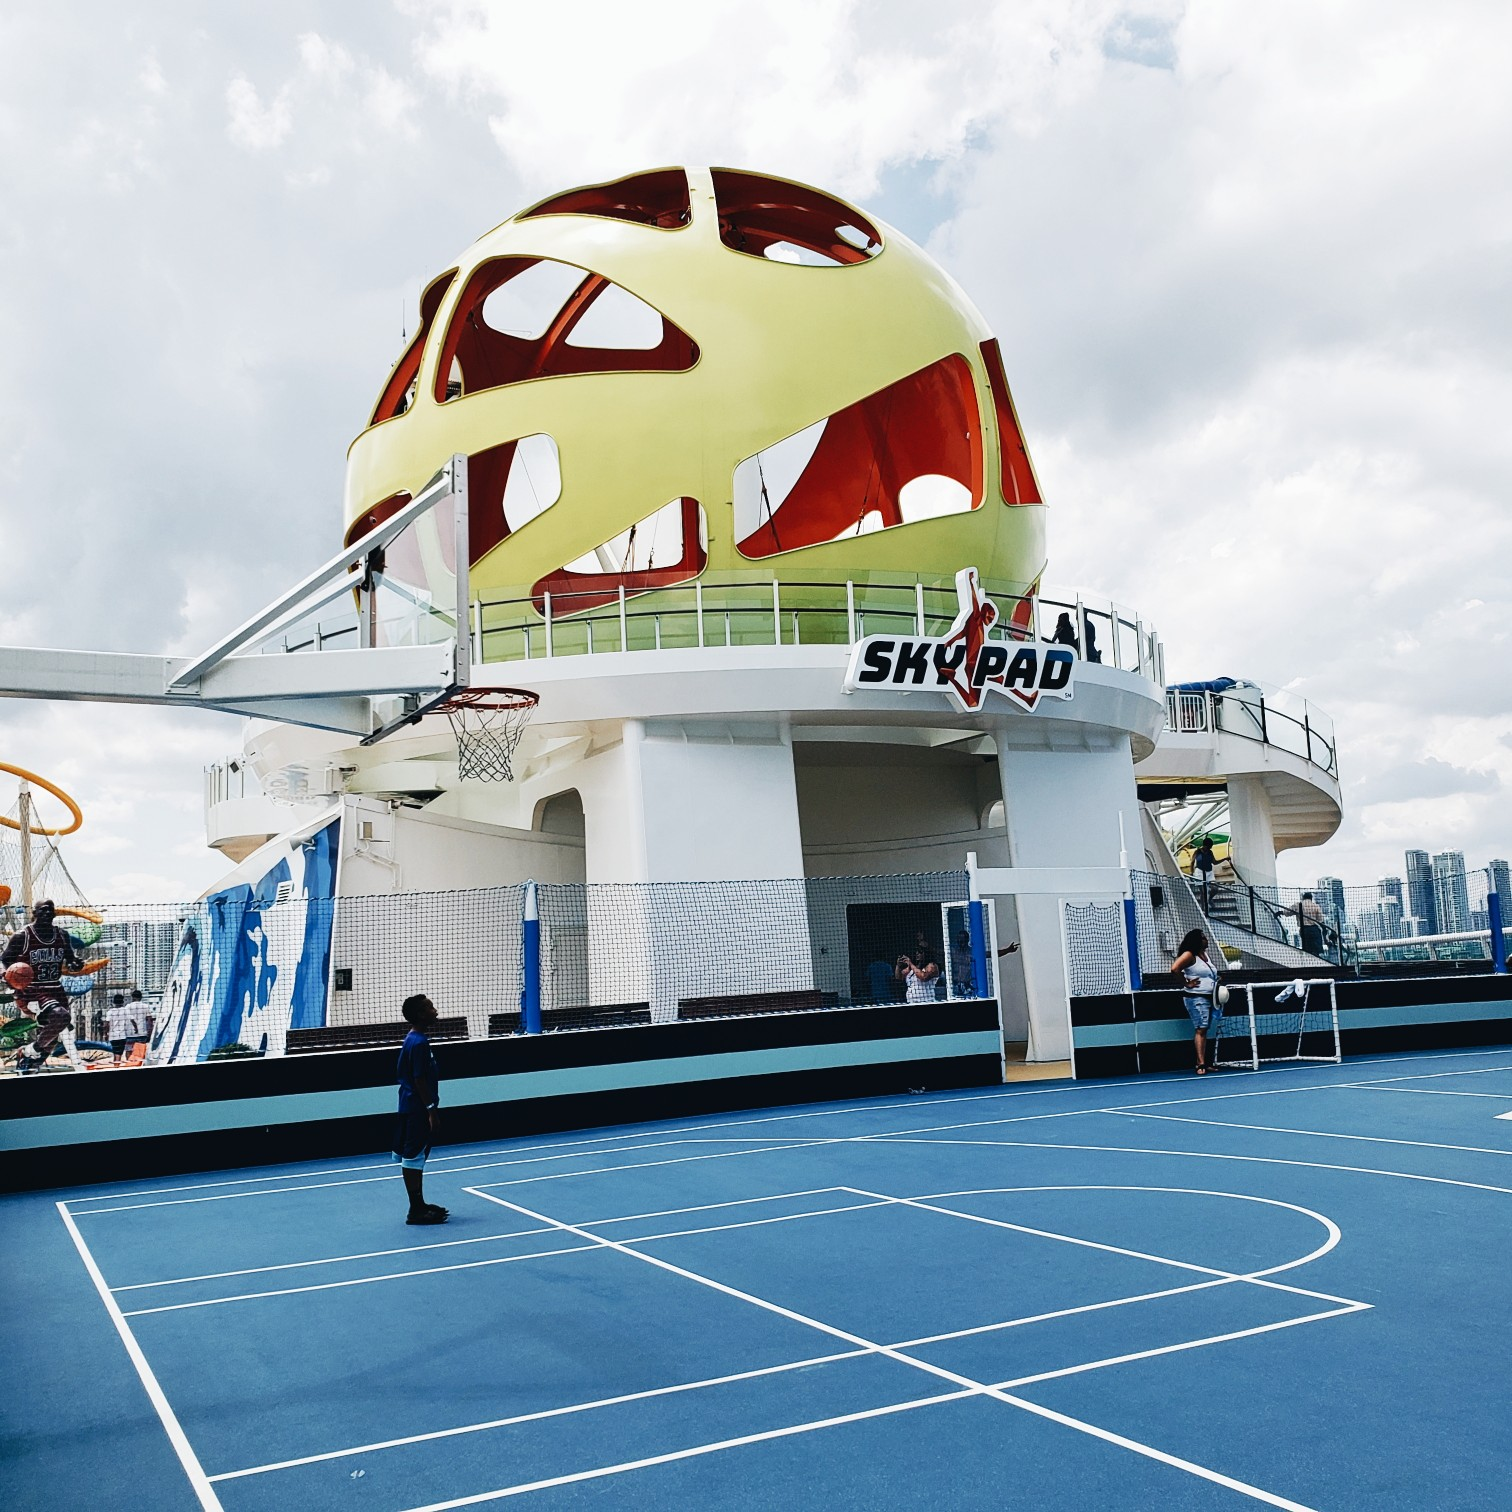 Royal Caribbean Mariner of the Seas Sky Pad next to Basketball Court